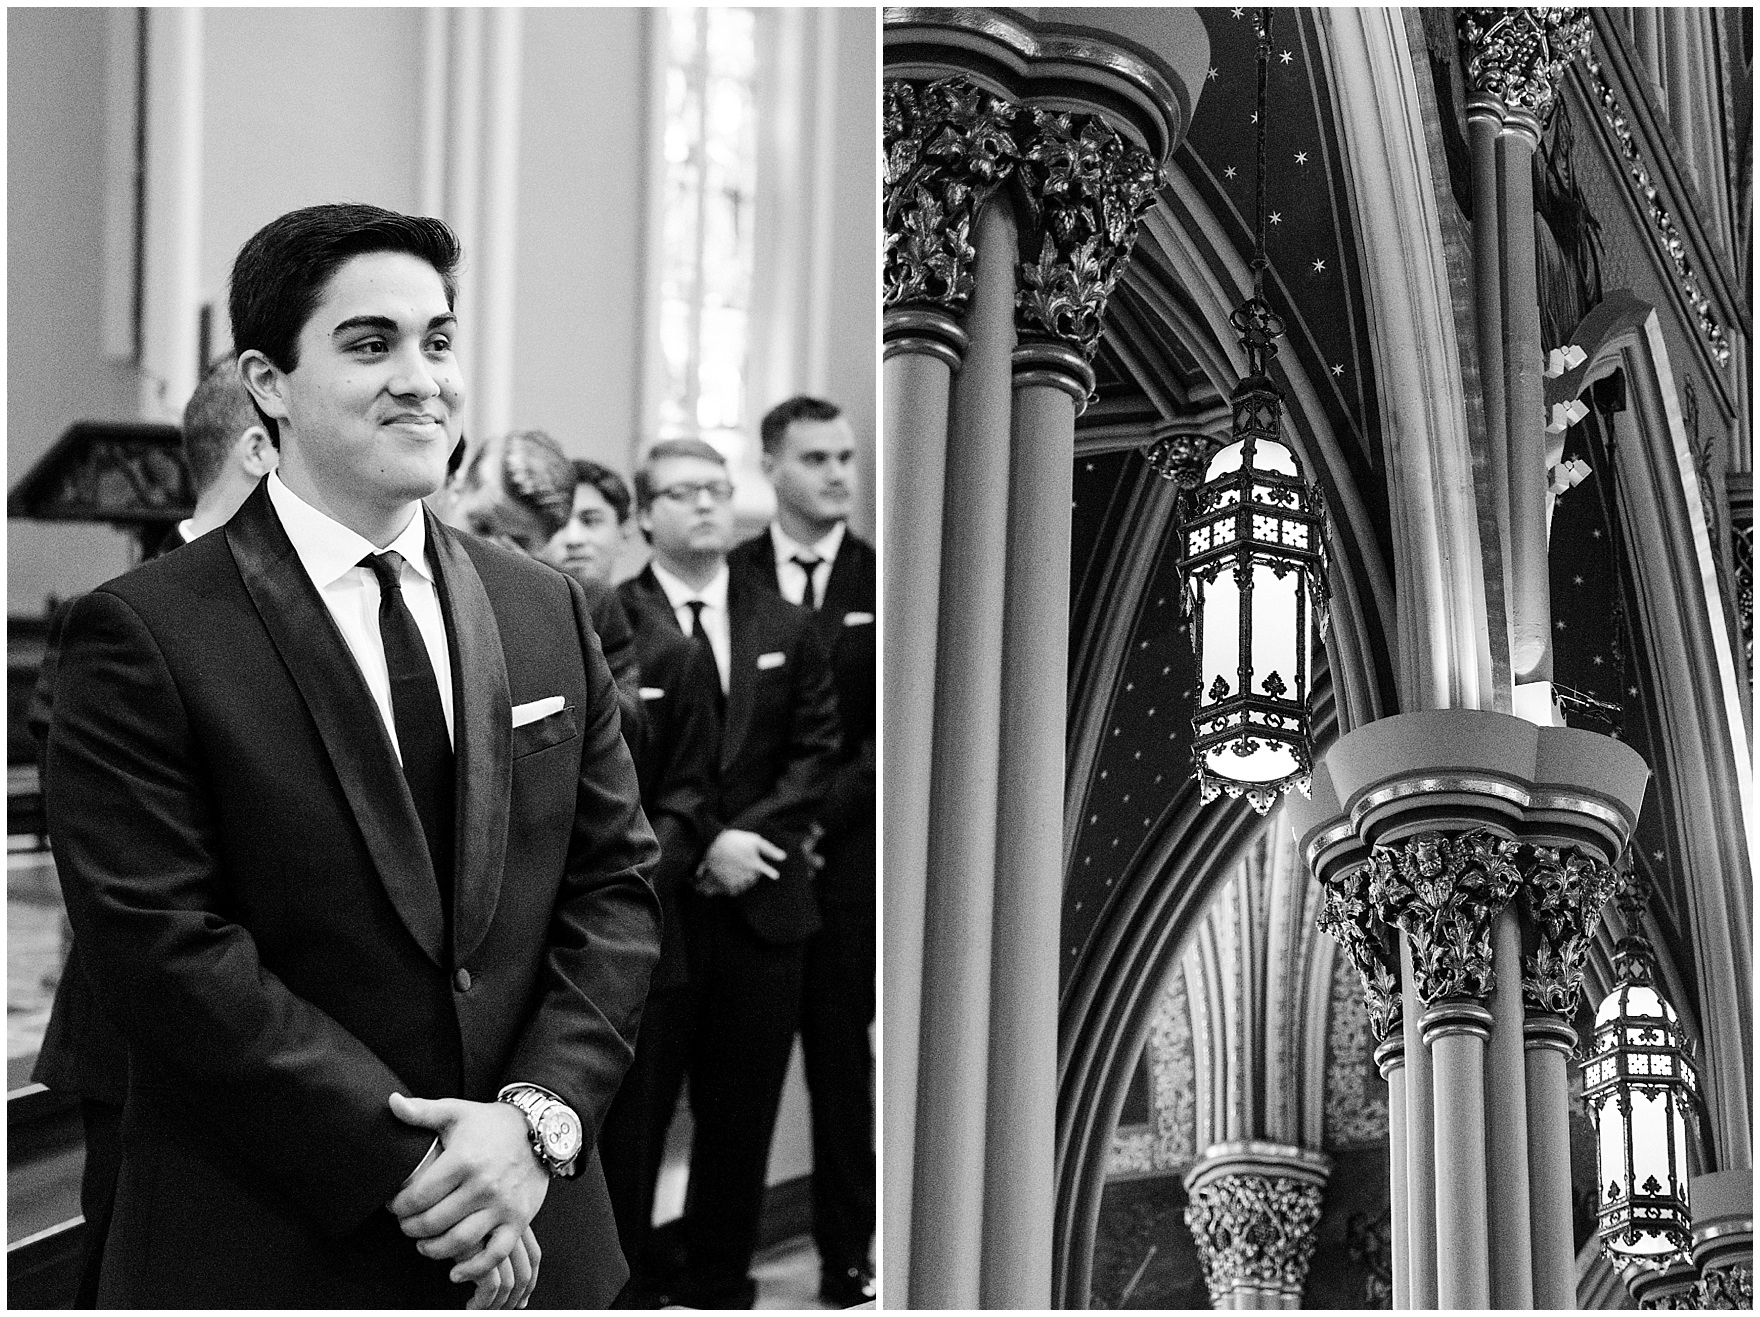 The groom watches his bride walk down the aisle of the Basilica of the Sacred Heart during a University of Notre Dame wedding.